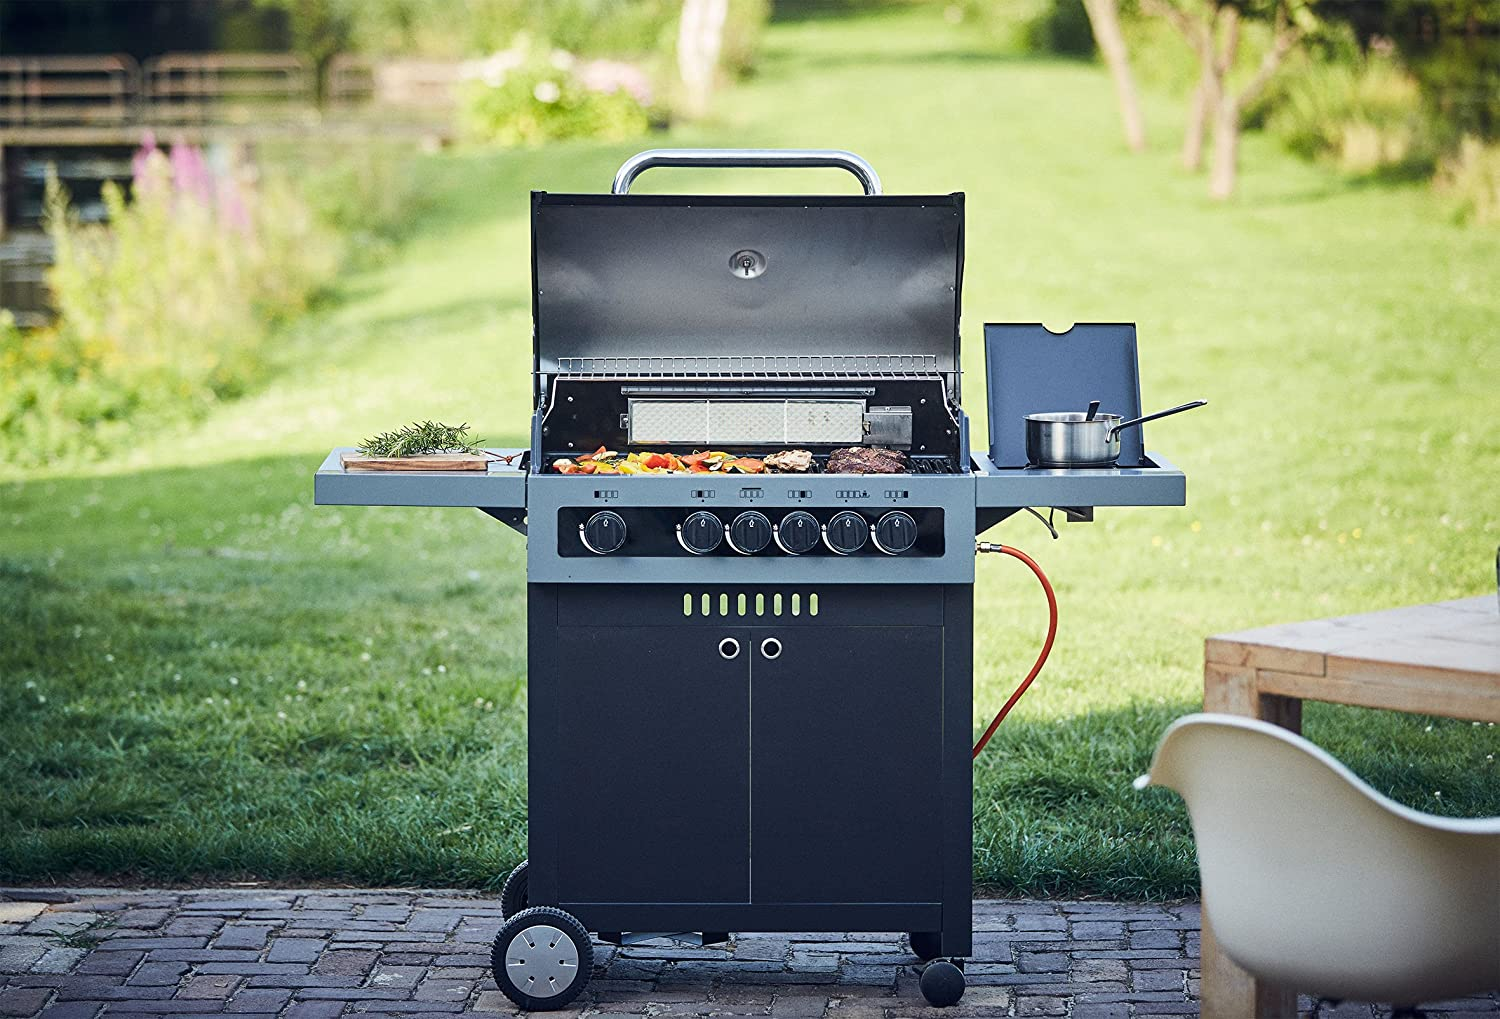 Enders Gasgrill Boston 3k Test : Enders bbq gasgrill boston black 4 ik gas grill 86876 4 edelstahl